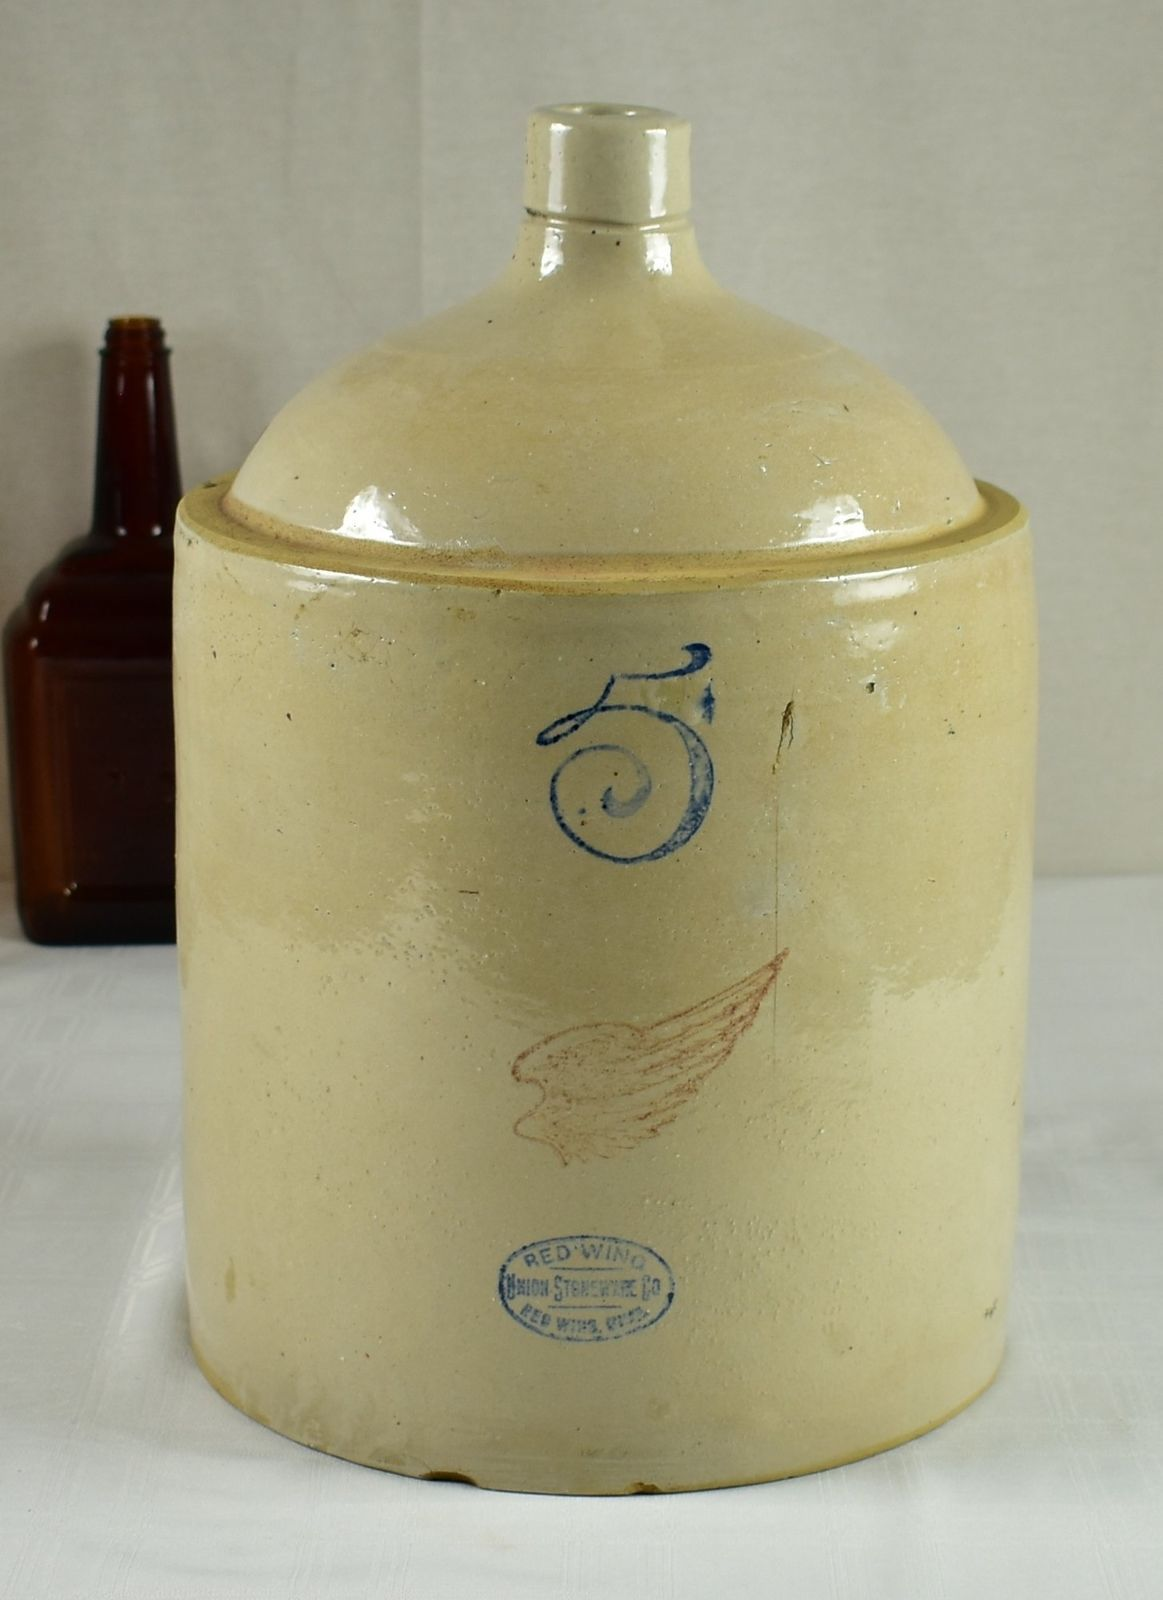 Vintage 5 Gallon Red Wing Pottery Crock ./ Jug - No Cracks!